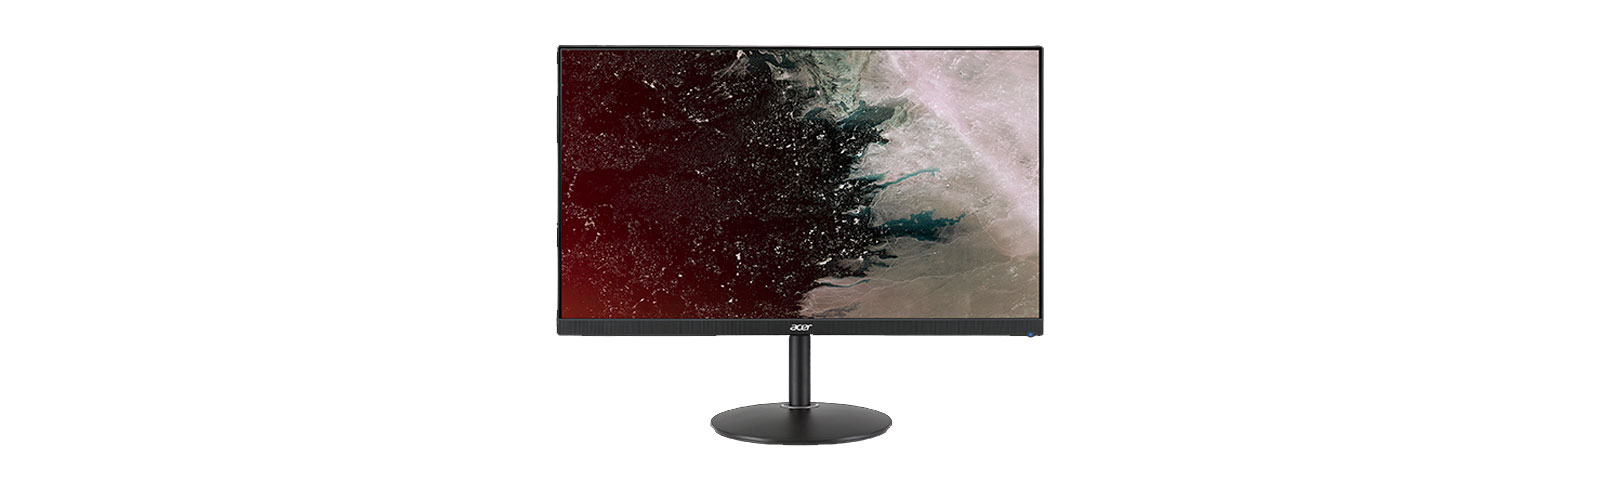 Acer launches two new Nitro XF2 gaming monitors with 240Hz refresh rate